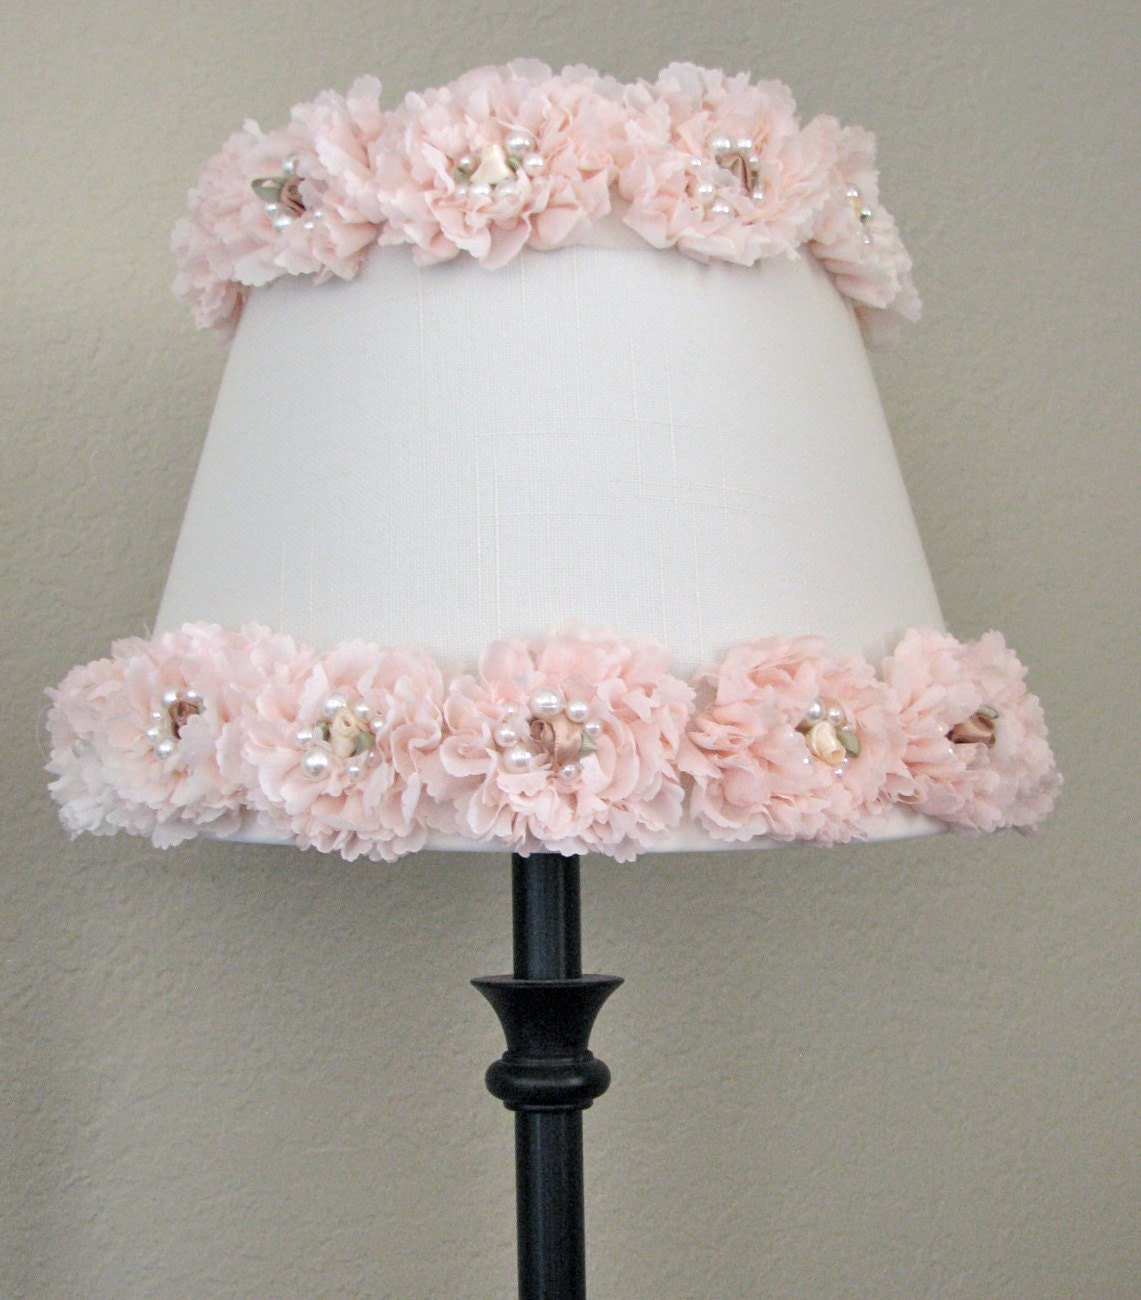 shabby chic lamp shade shabby chic nursery decor rose lamp. Black Bedroom Furniture Sets. Home Design Ideas